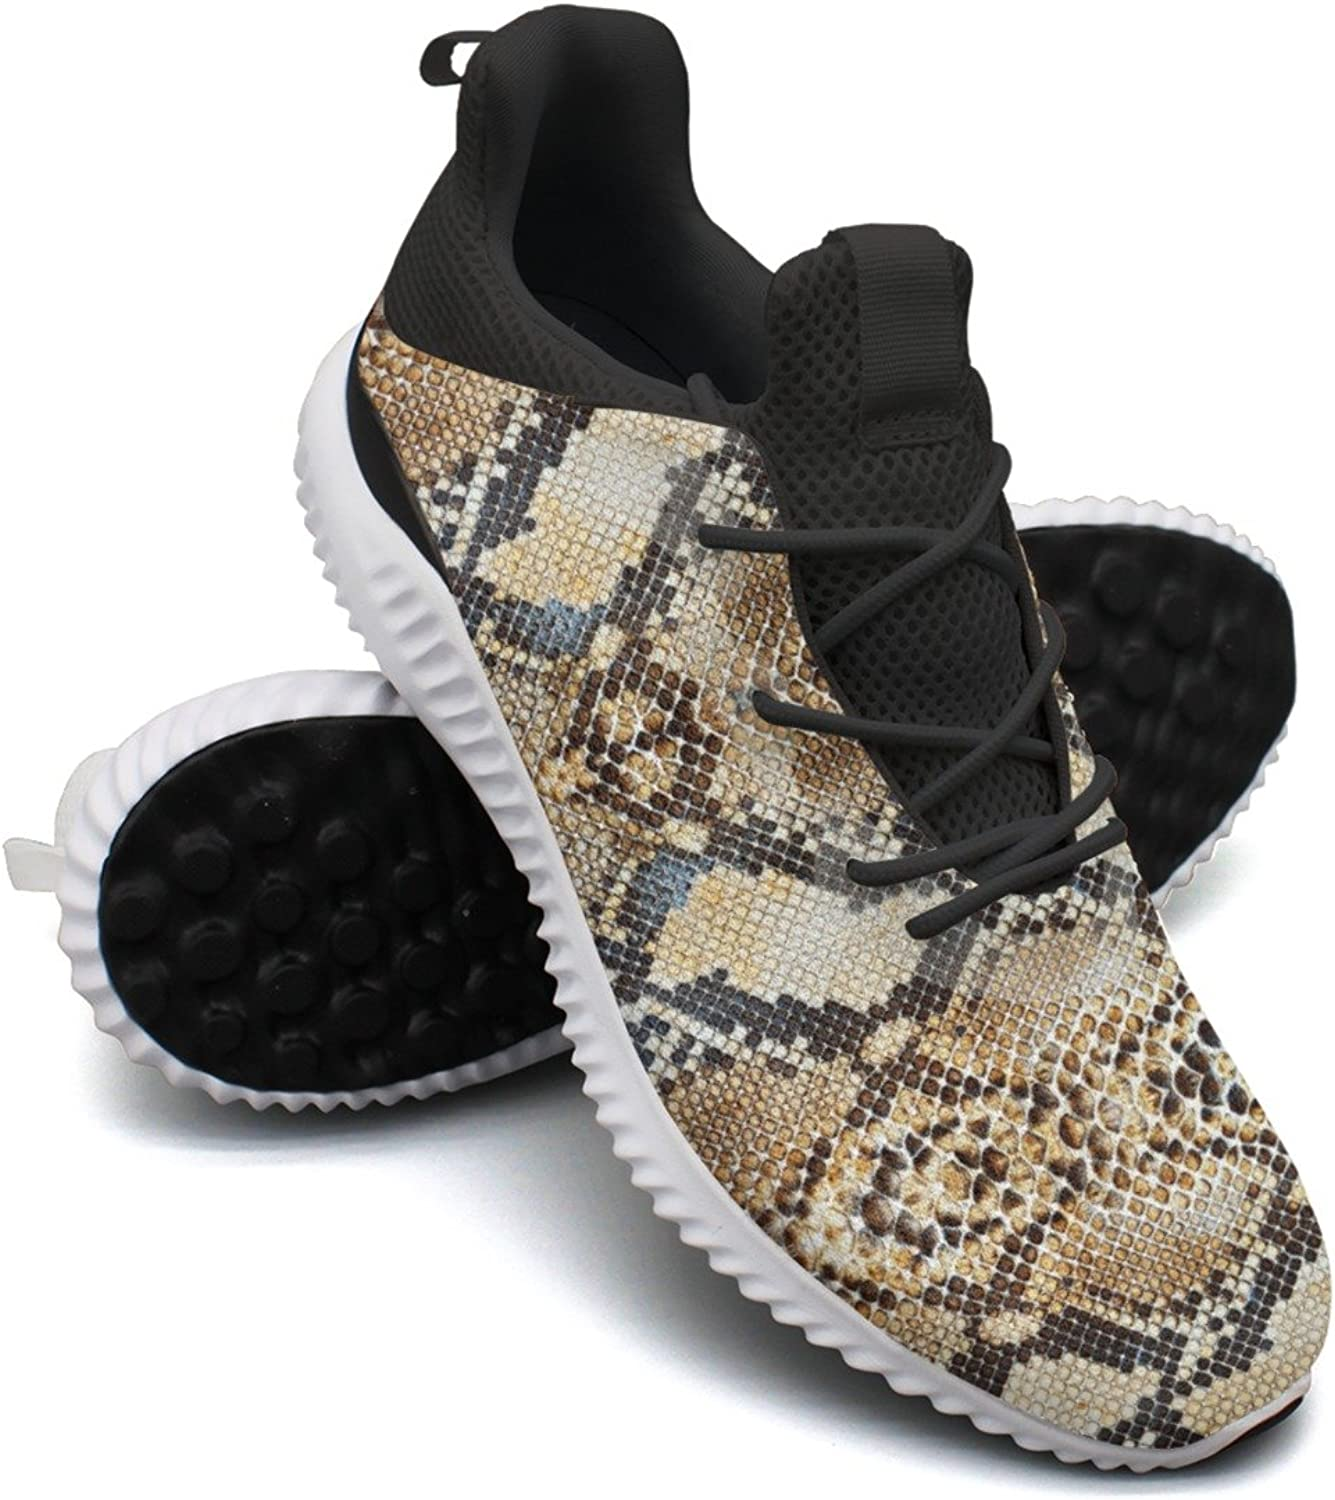 Python Snake Skin Animal Leisure Sports Running shoes Young Women Printing Hunting Active